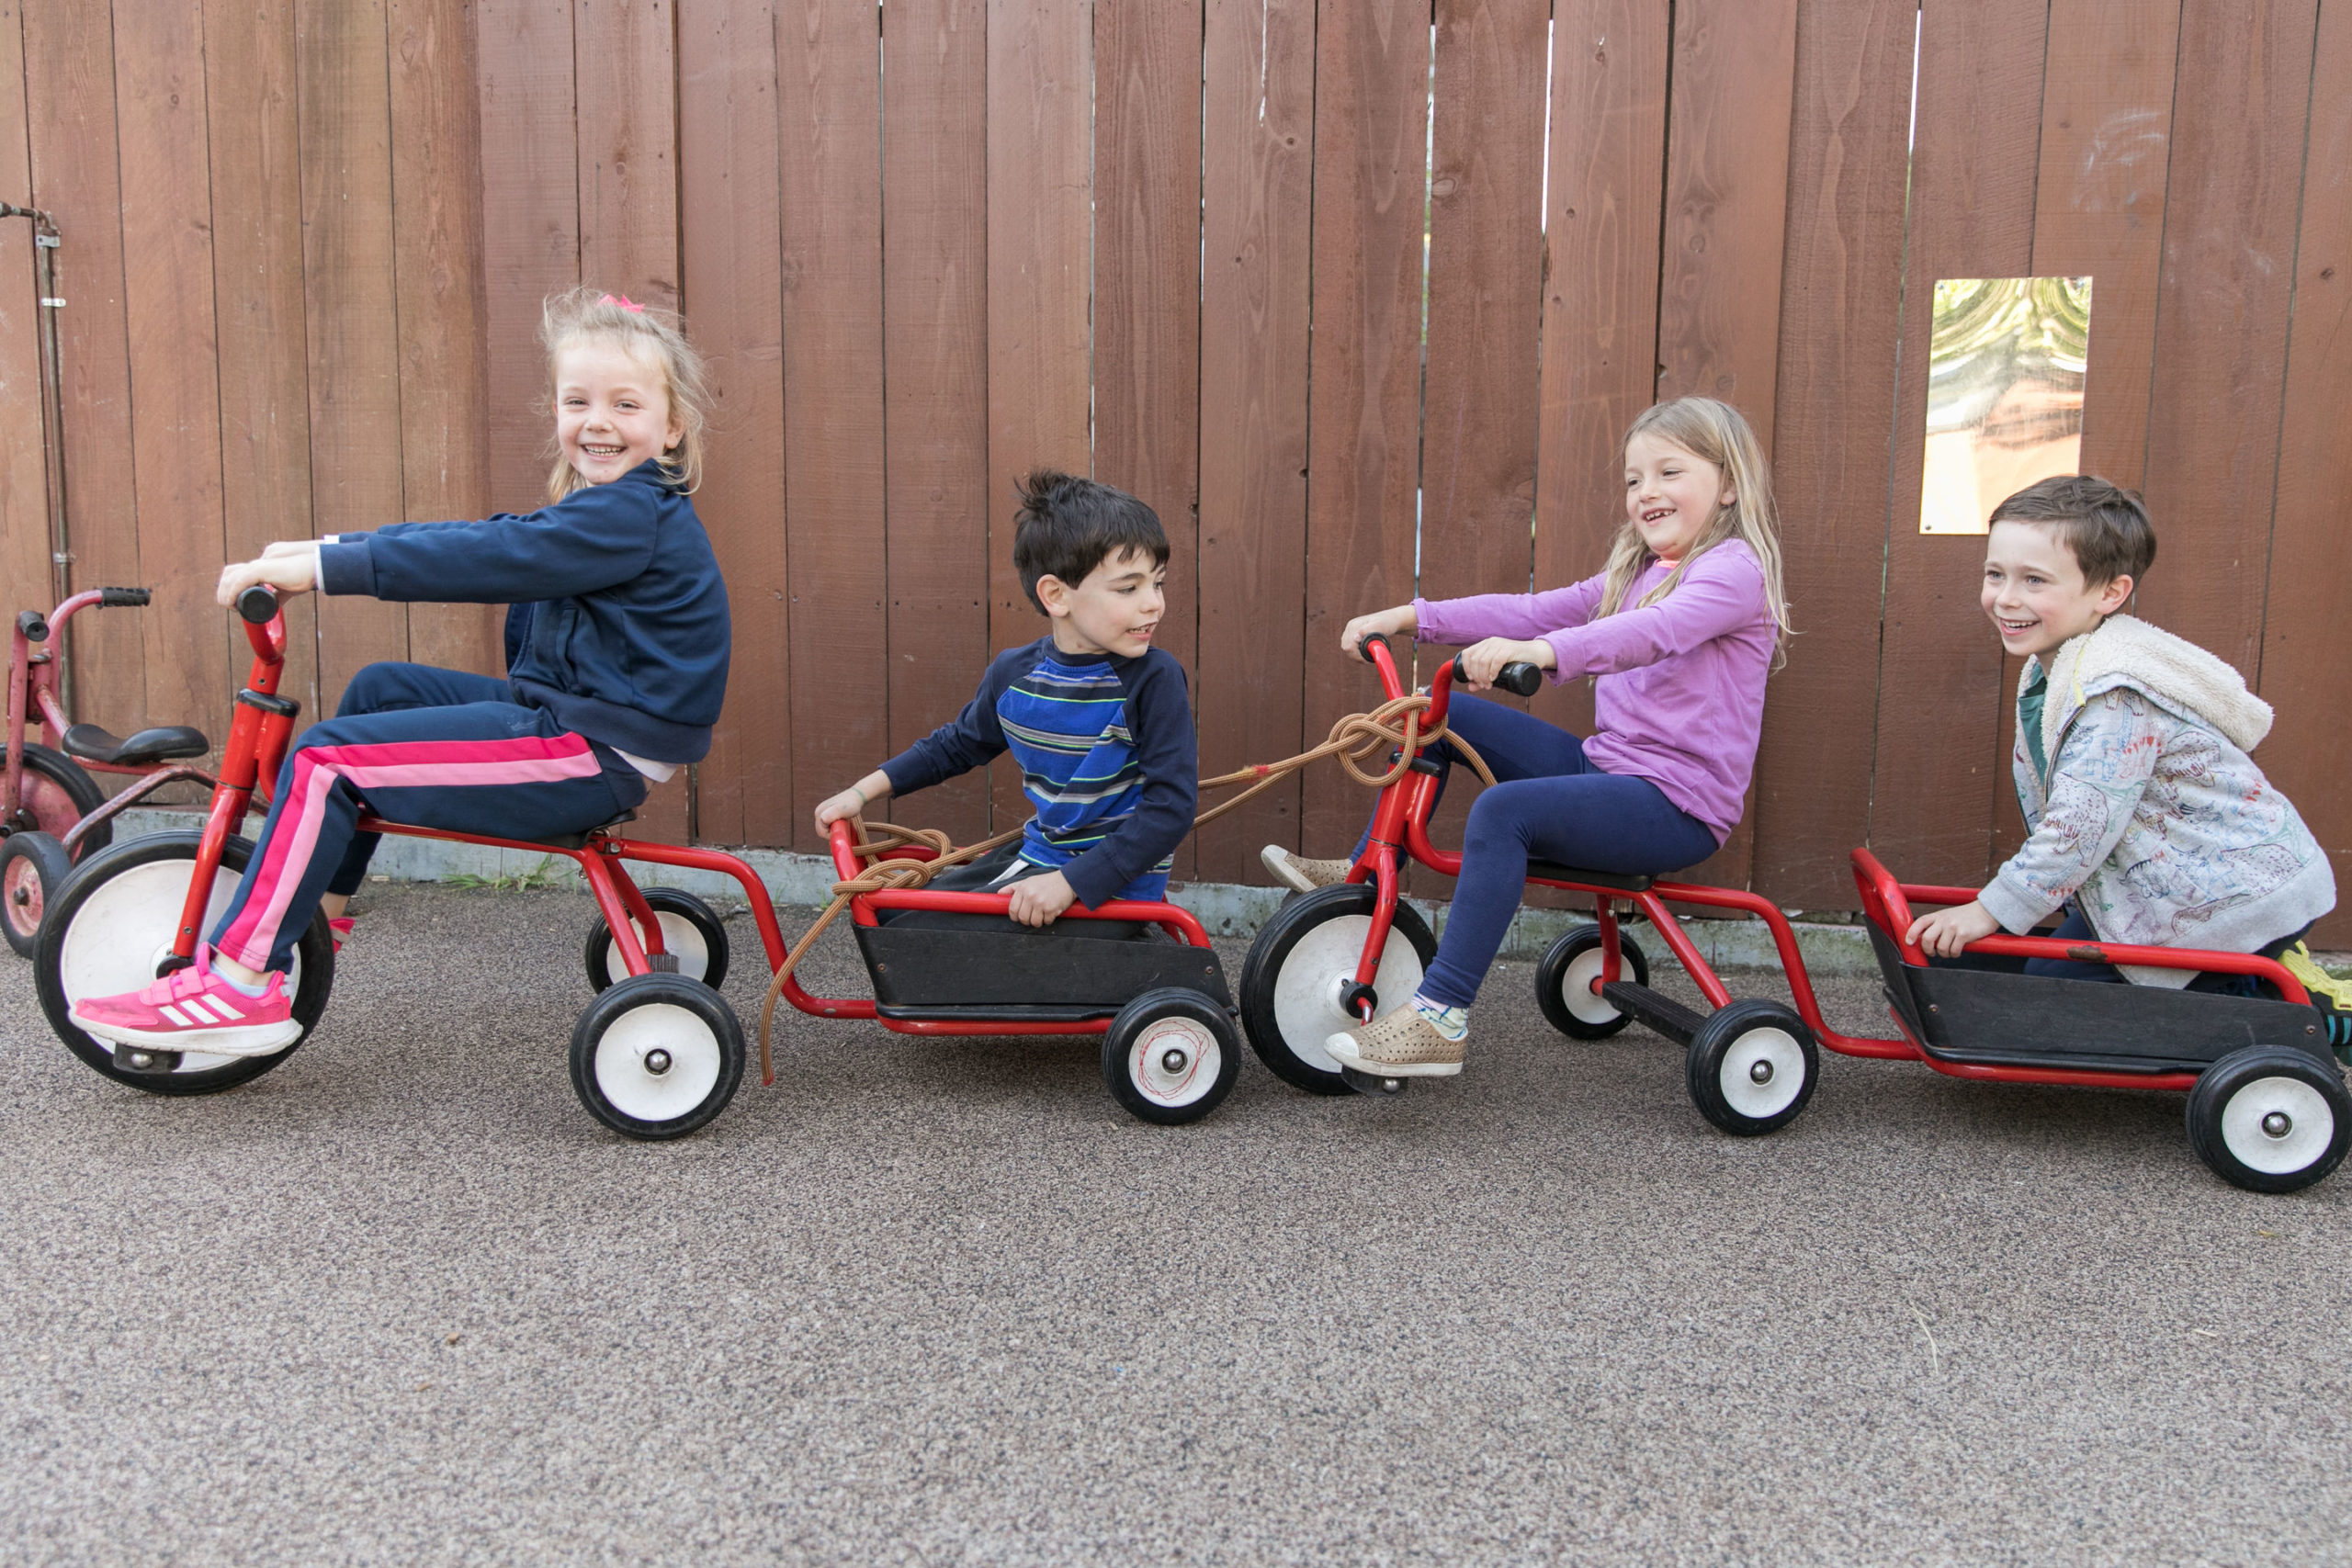 Children riding a bicycle train